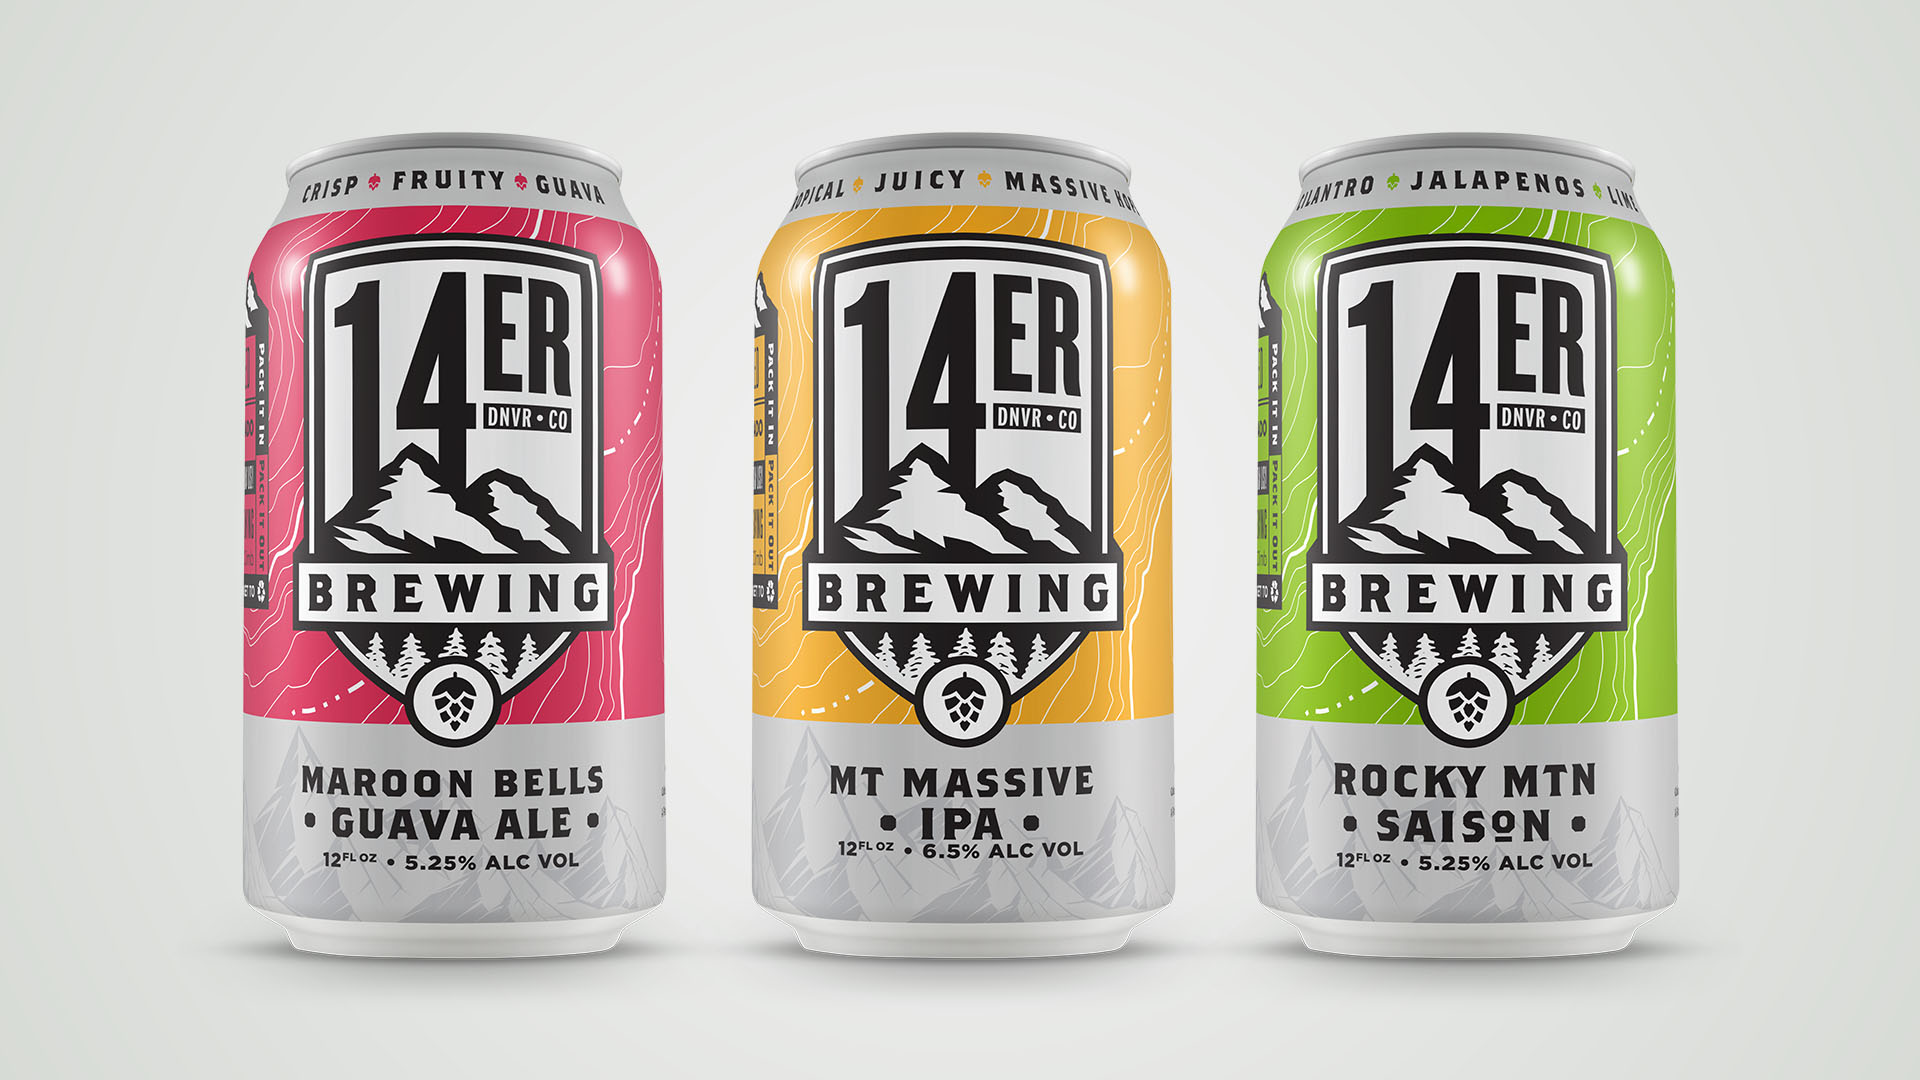 14er Brewing Co - Core Cans | Shane Harris